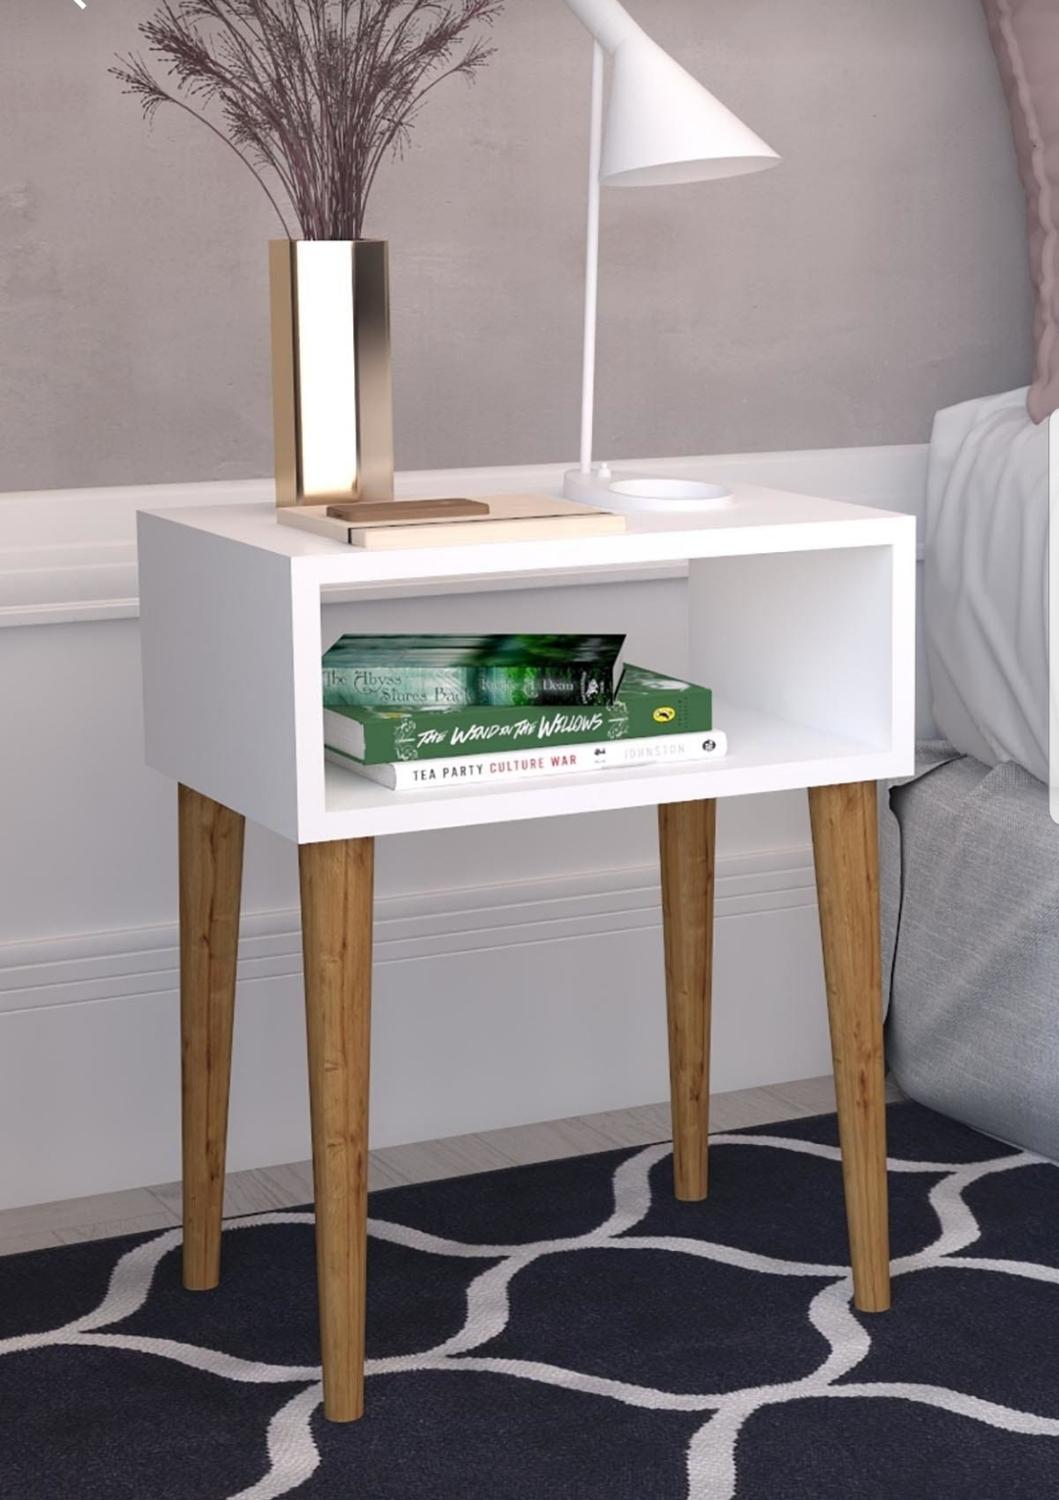 Home Side Table Furniture Square Coffee Table Living Room Small Bedside Table Design End Table Sofaside Minimalist Small Desk